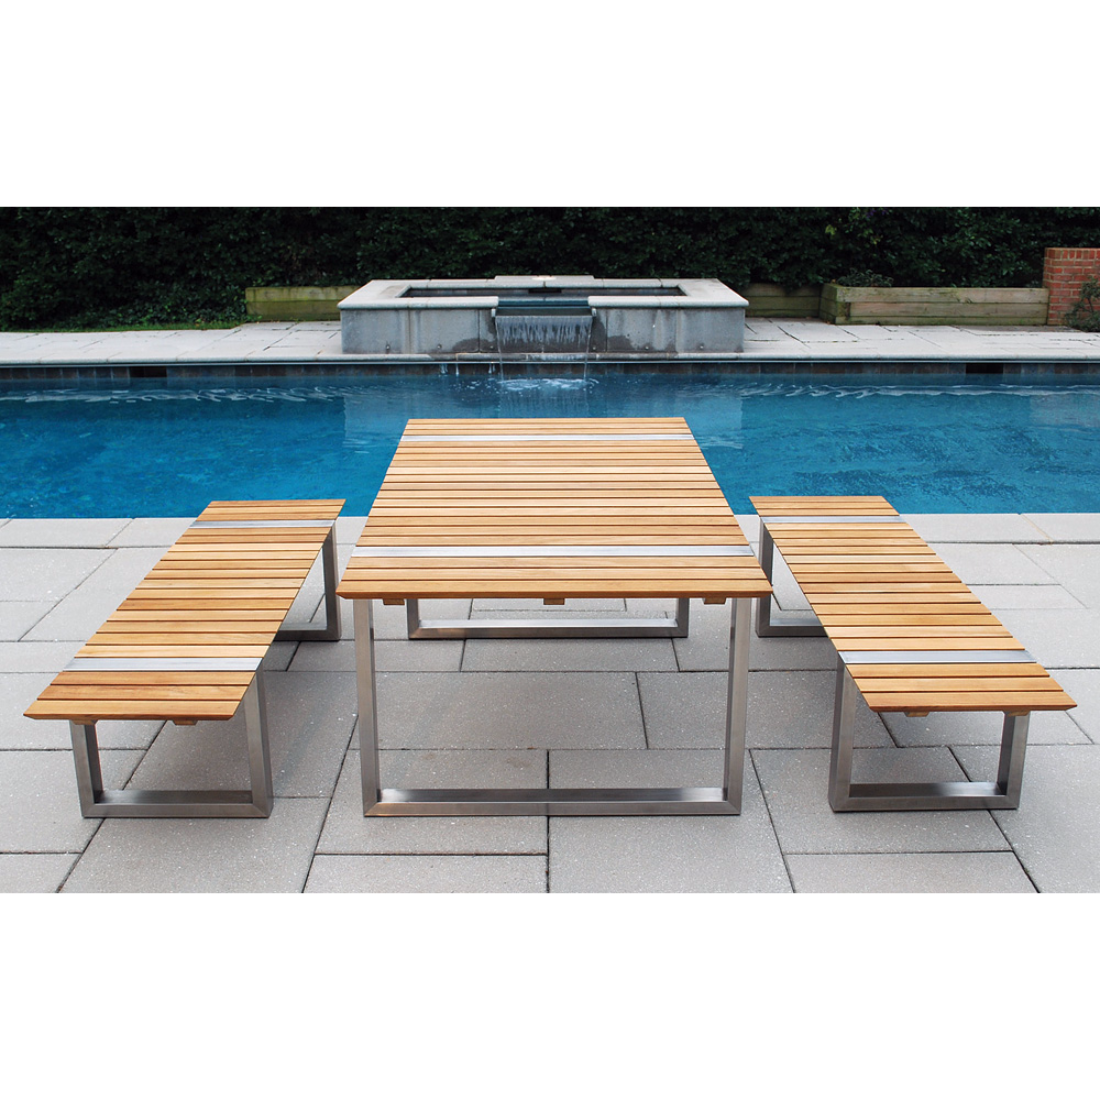 Bailey Communal Table - Outdoor communal table